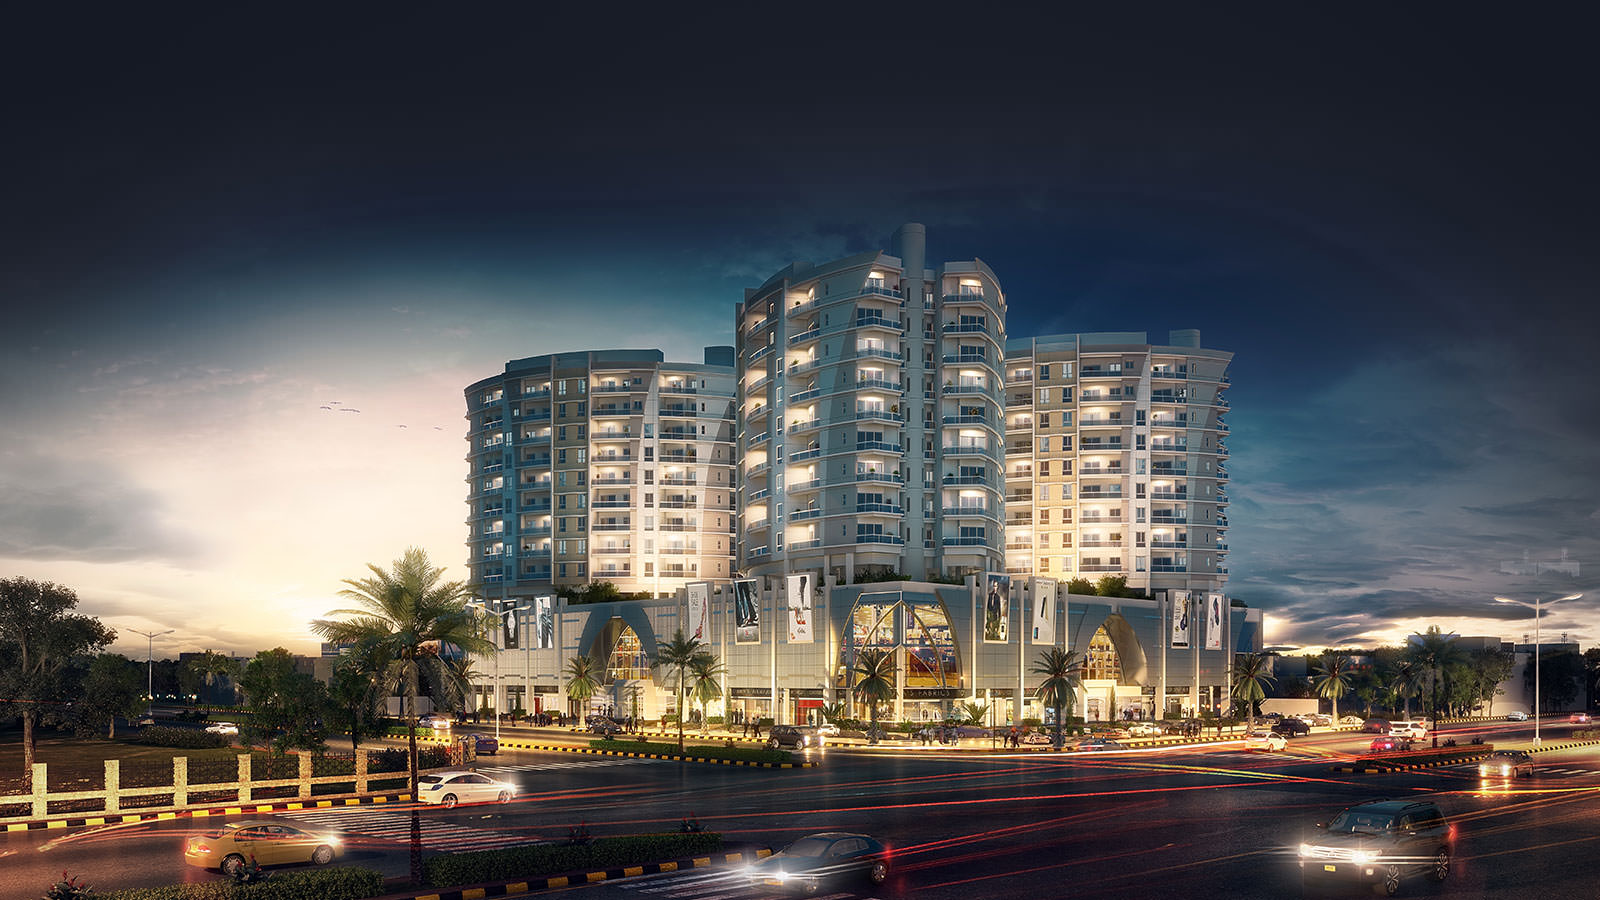 architectural rendering image | Pixarch